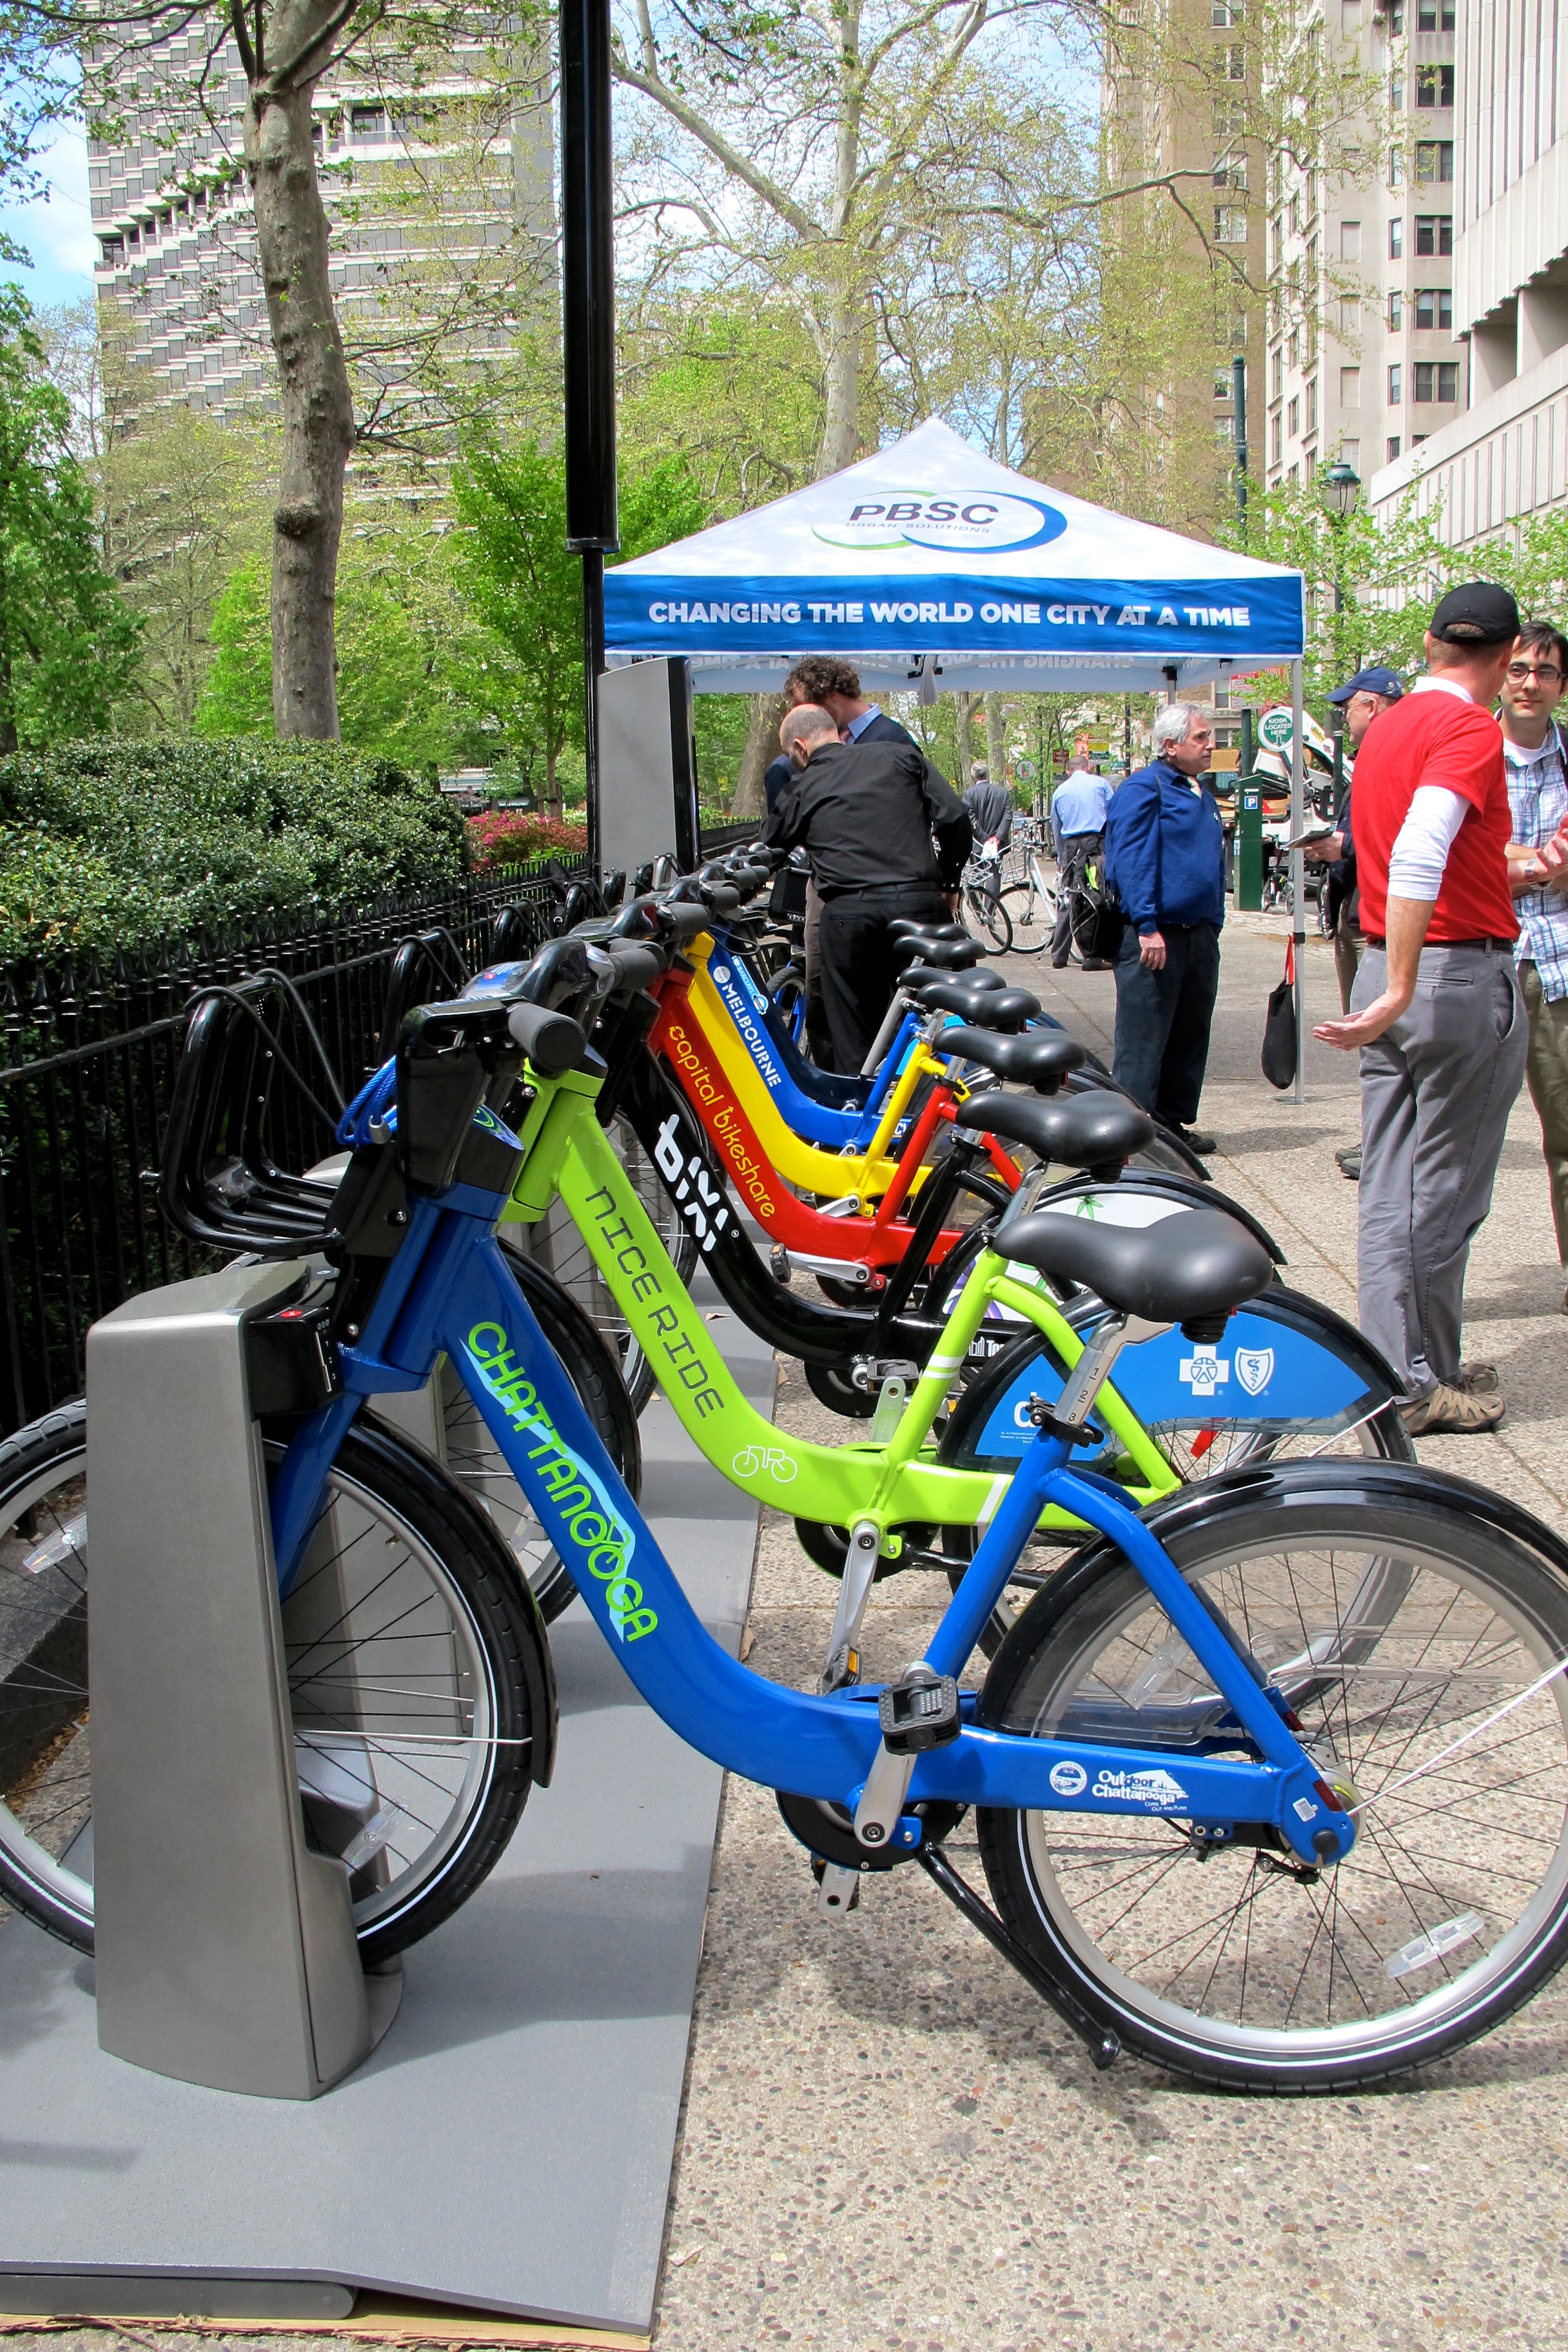 Alta / PBSC bike share station with examples from several systems.